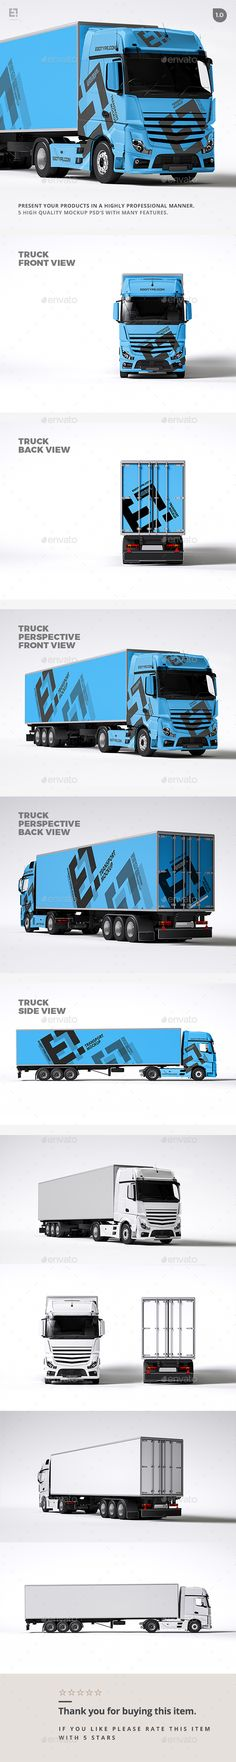 Truck Mock Up  PSD Template • Download ➝ https://graphicriver.net/item/truck-mock-up/17097695?ref=pxcr